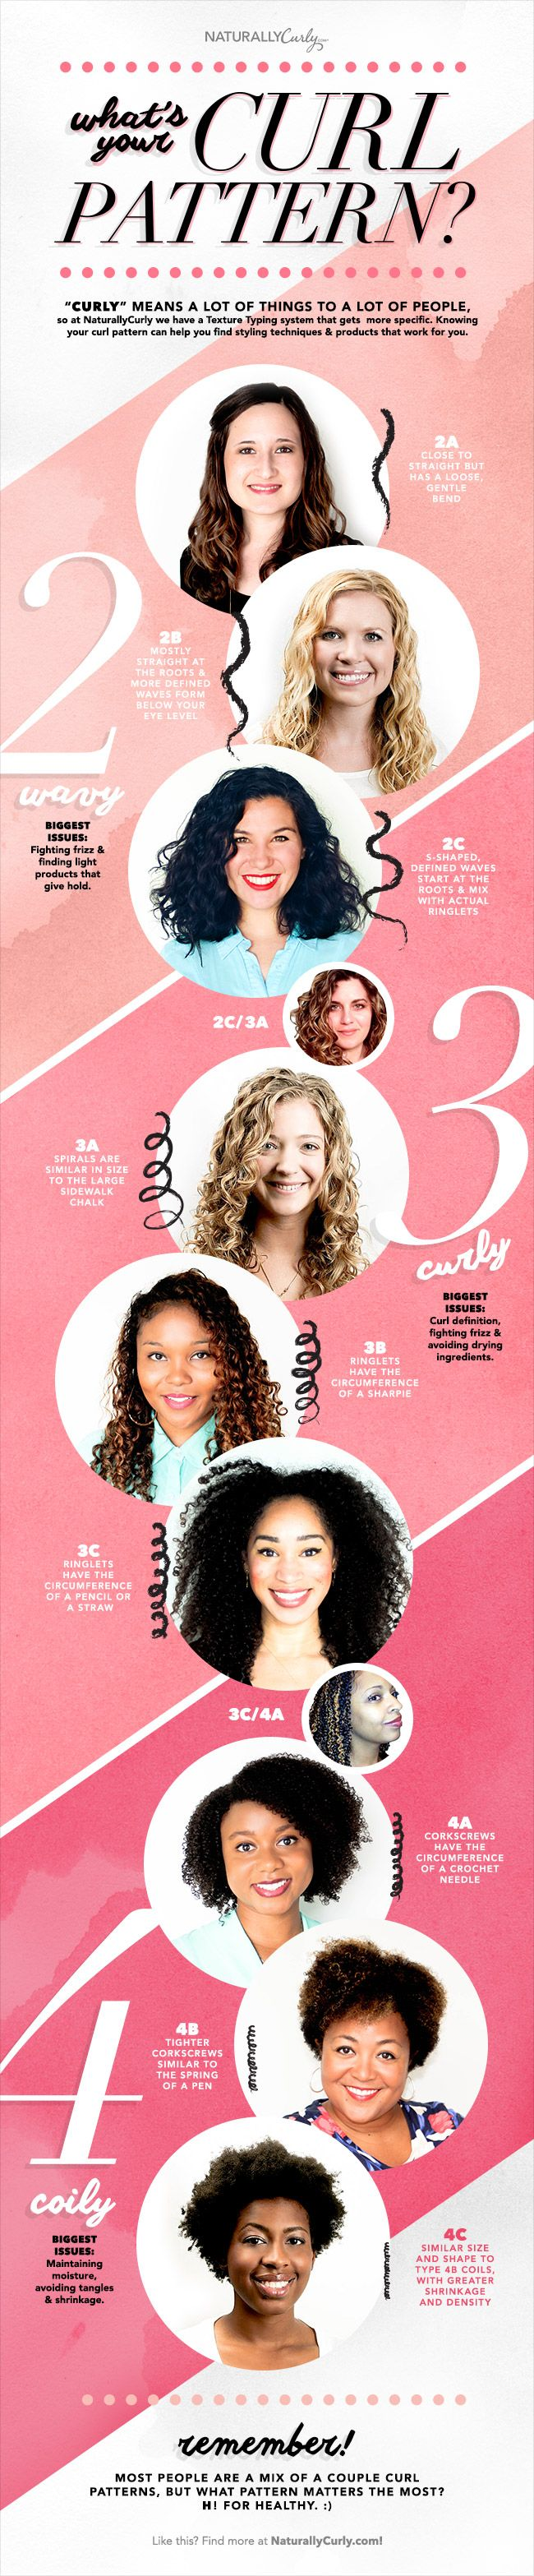 "Here's how to figure out your curl pattern, because we know ""curly"" means a lot of things to a lot of people."